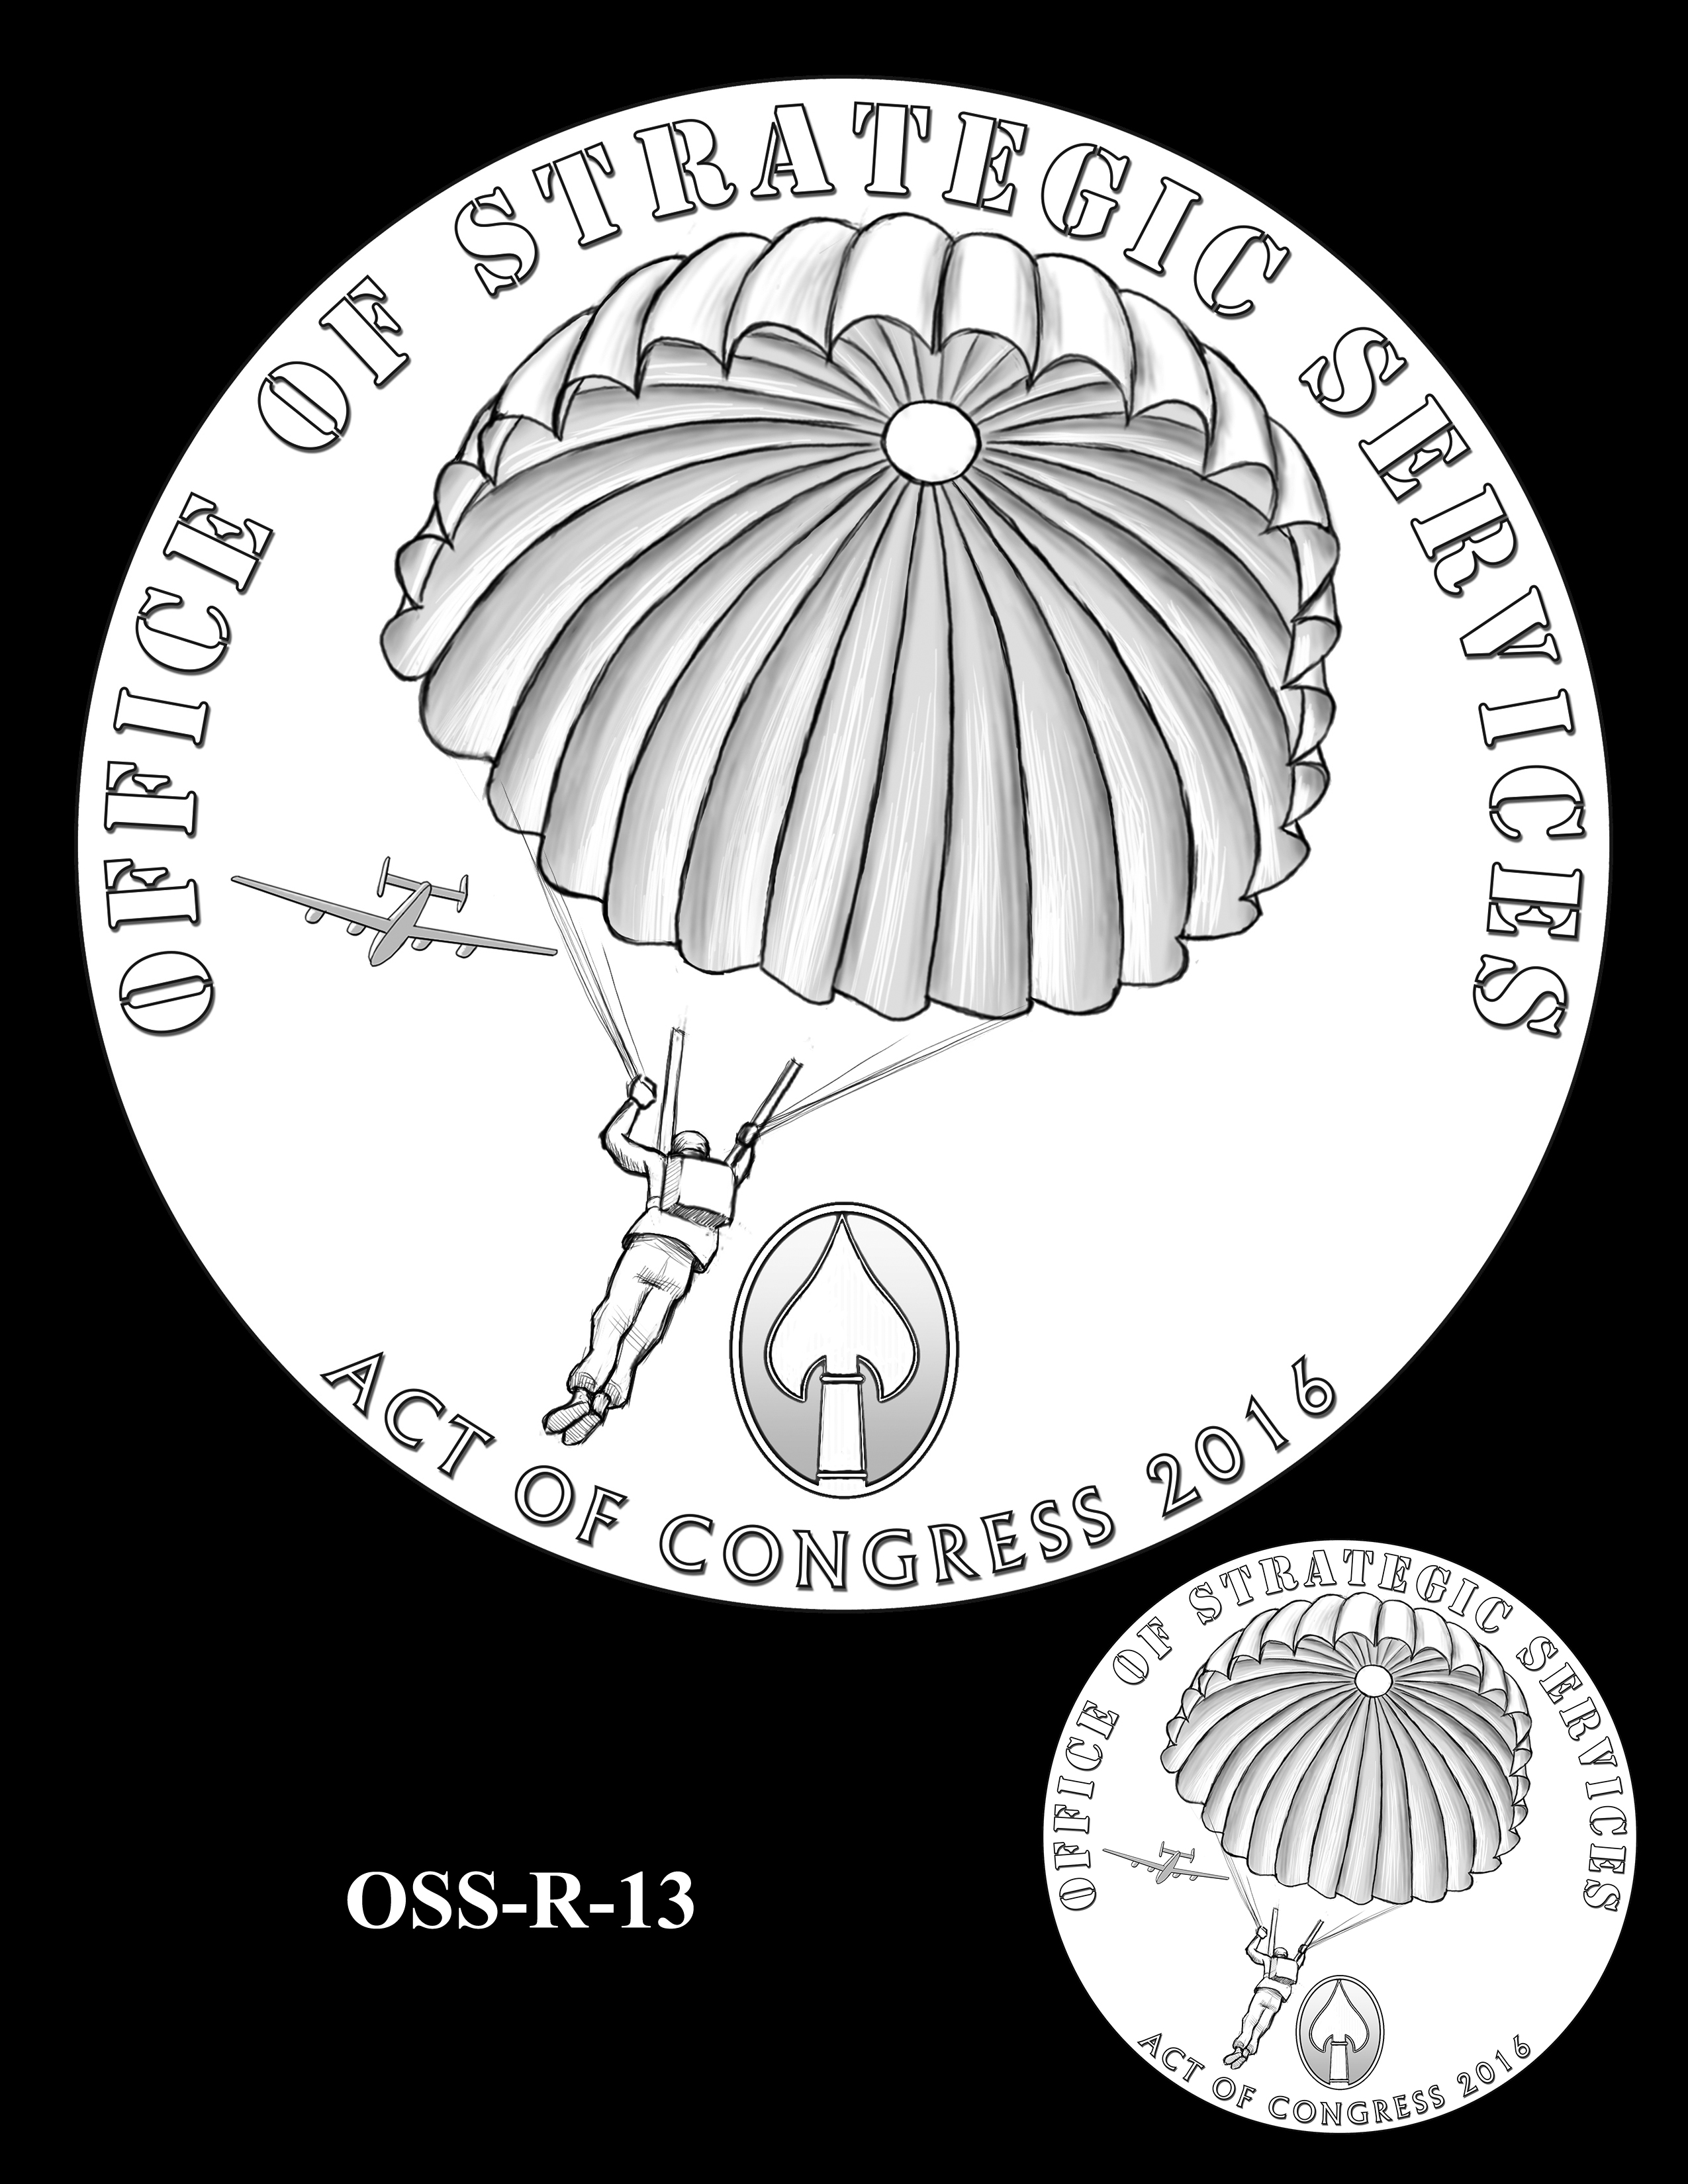 OSS-R-13 -- Office of Strategic Services Congressional Gold Medal